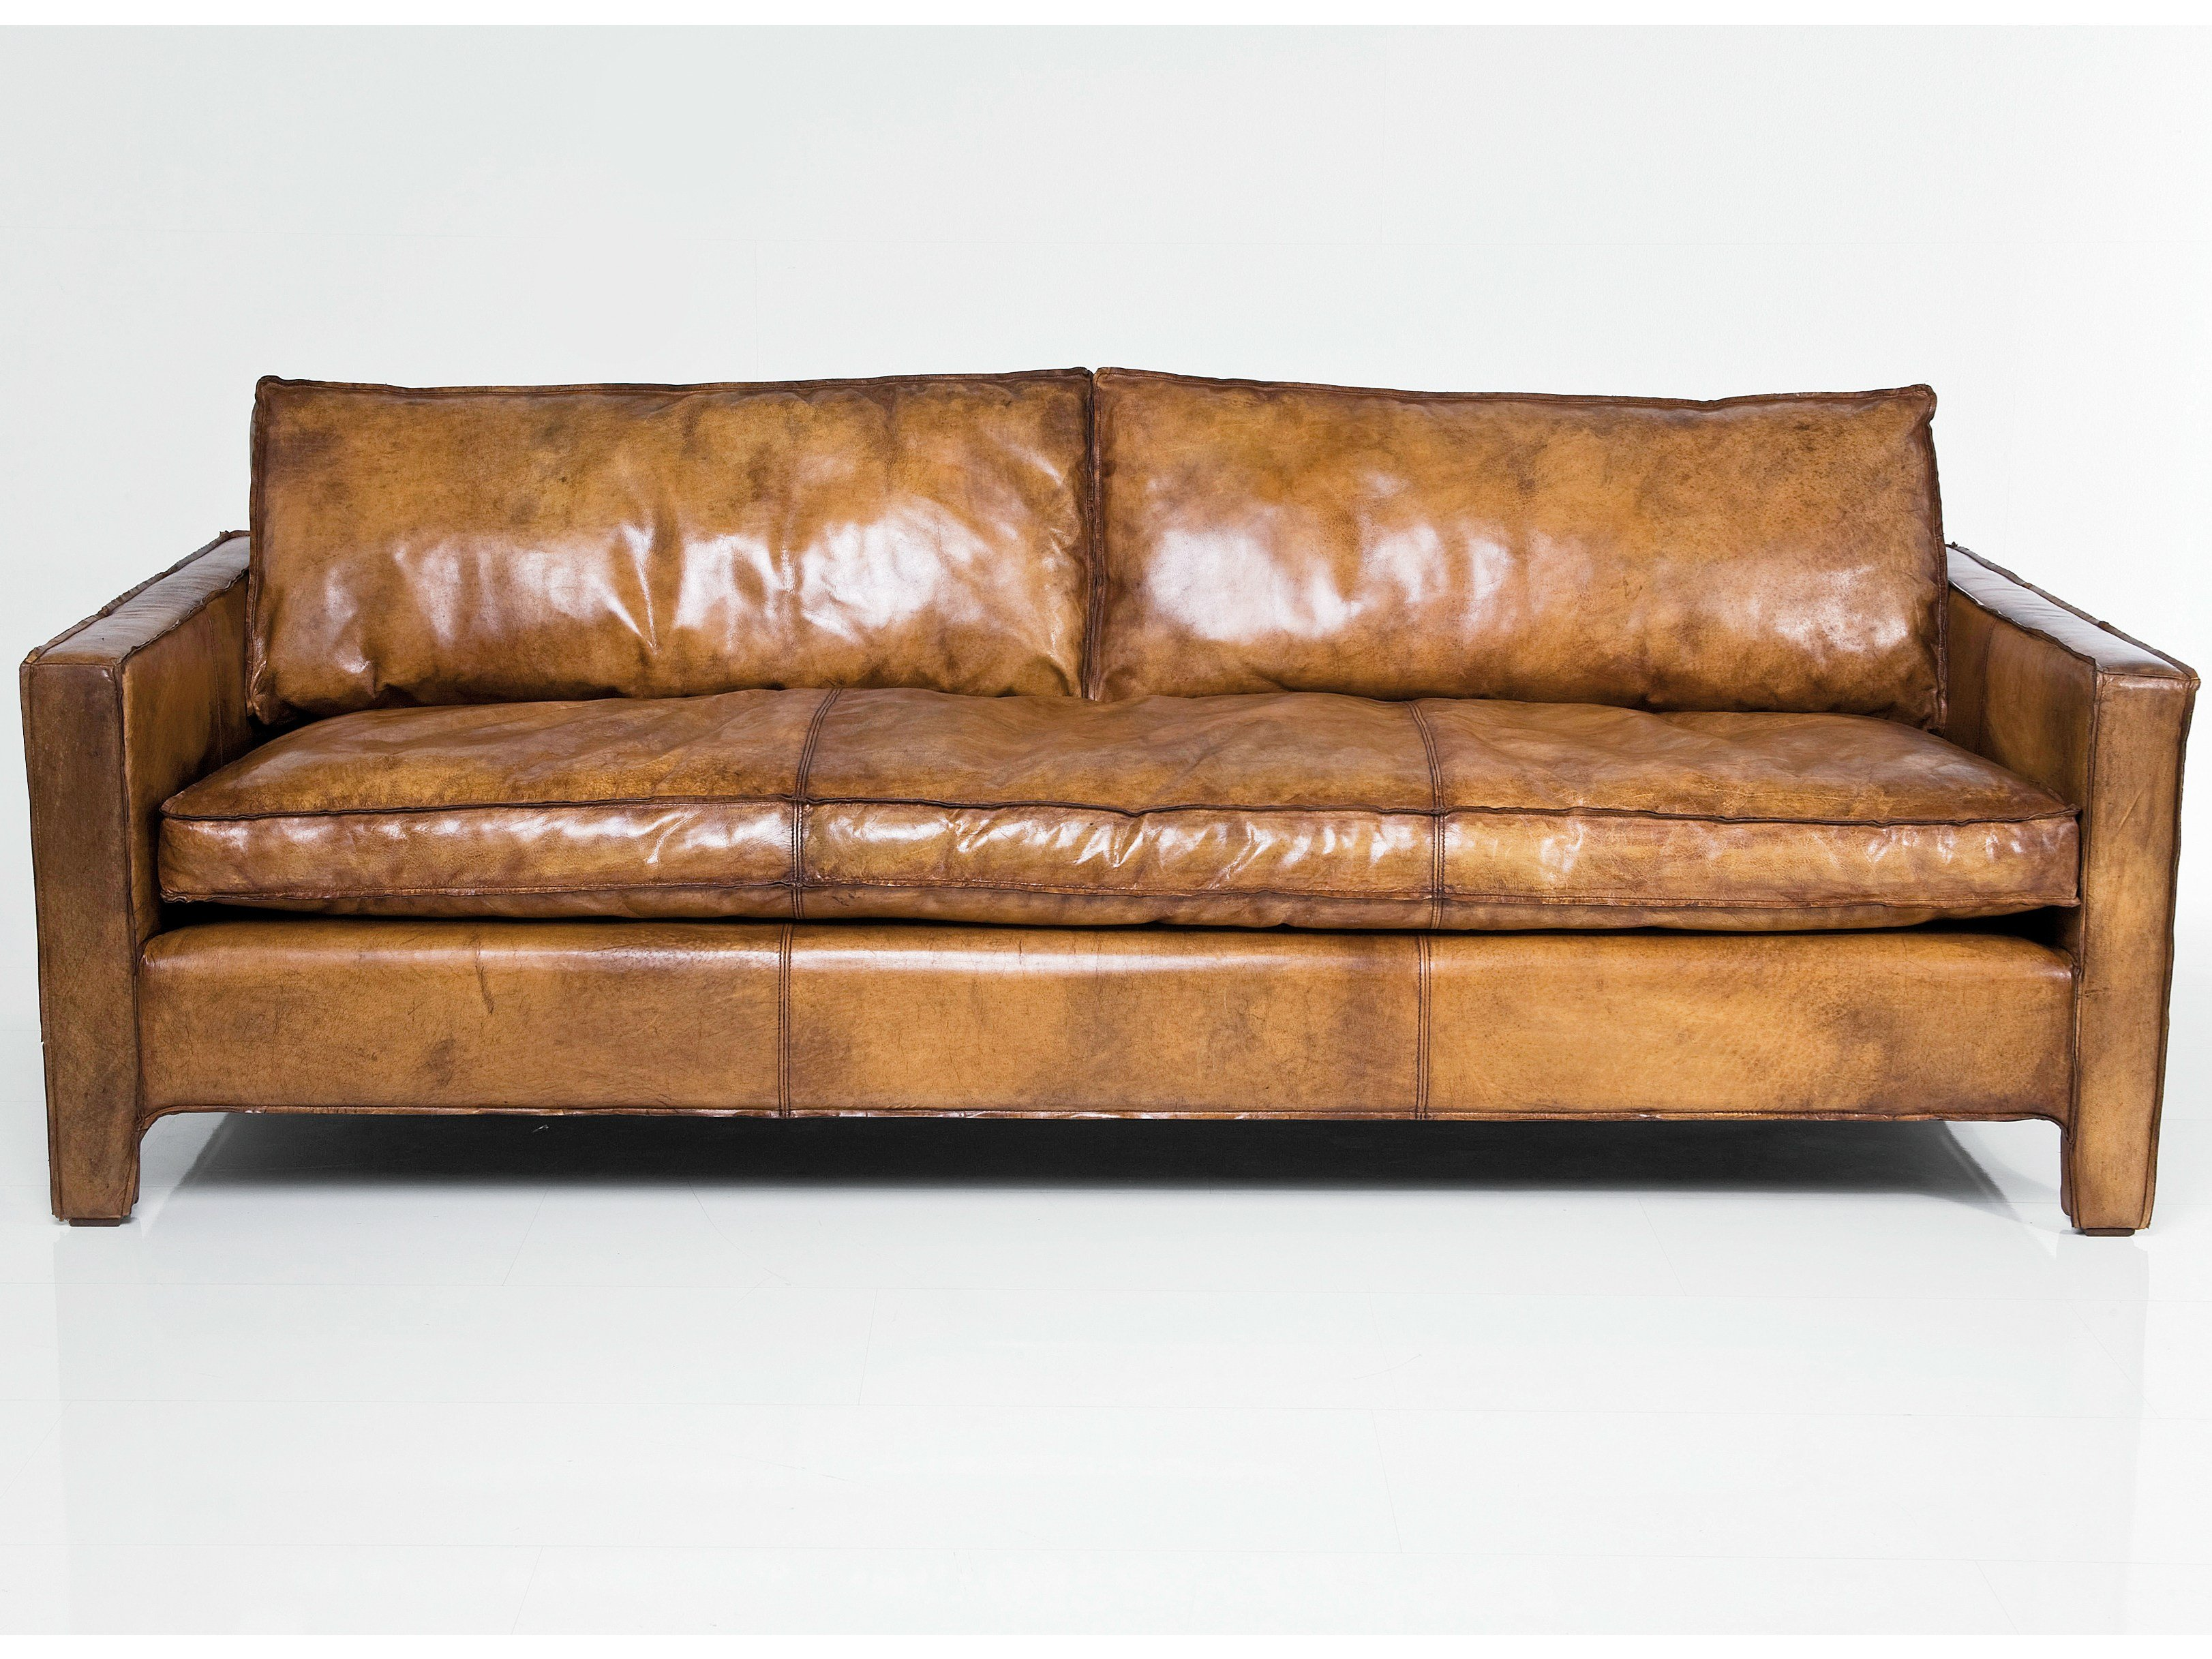 Comfy Leather Couches 3 seater leather sofa comfy buffalo brownkare-design